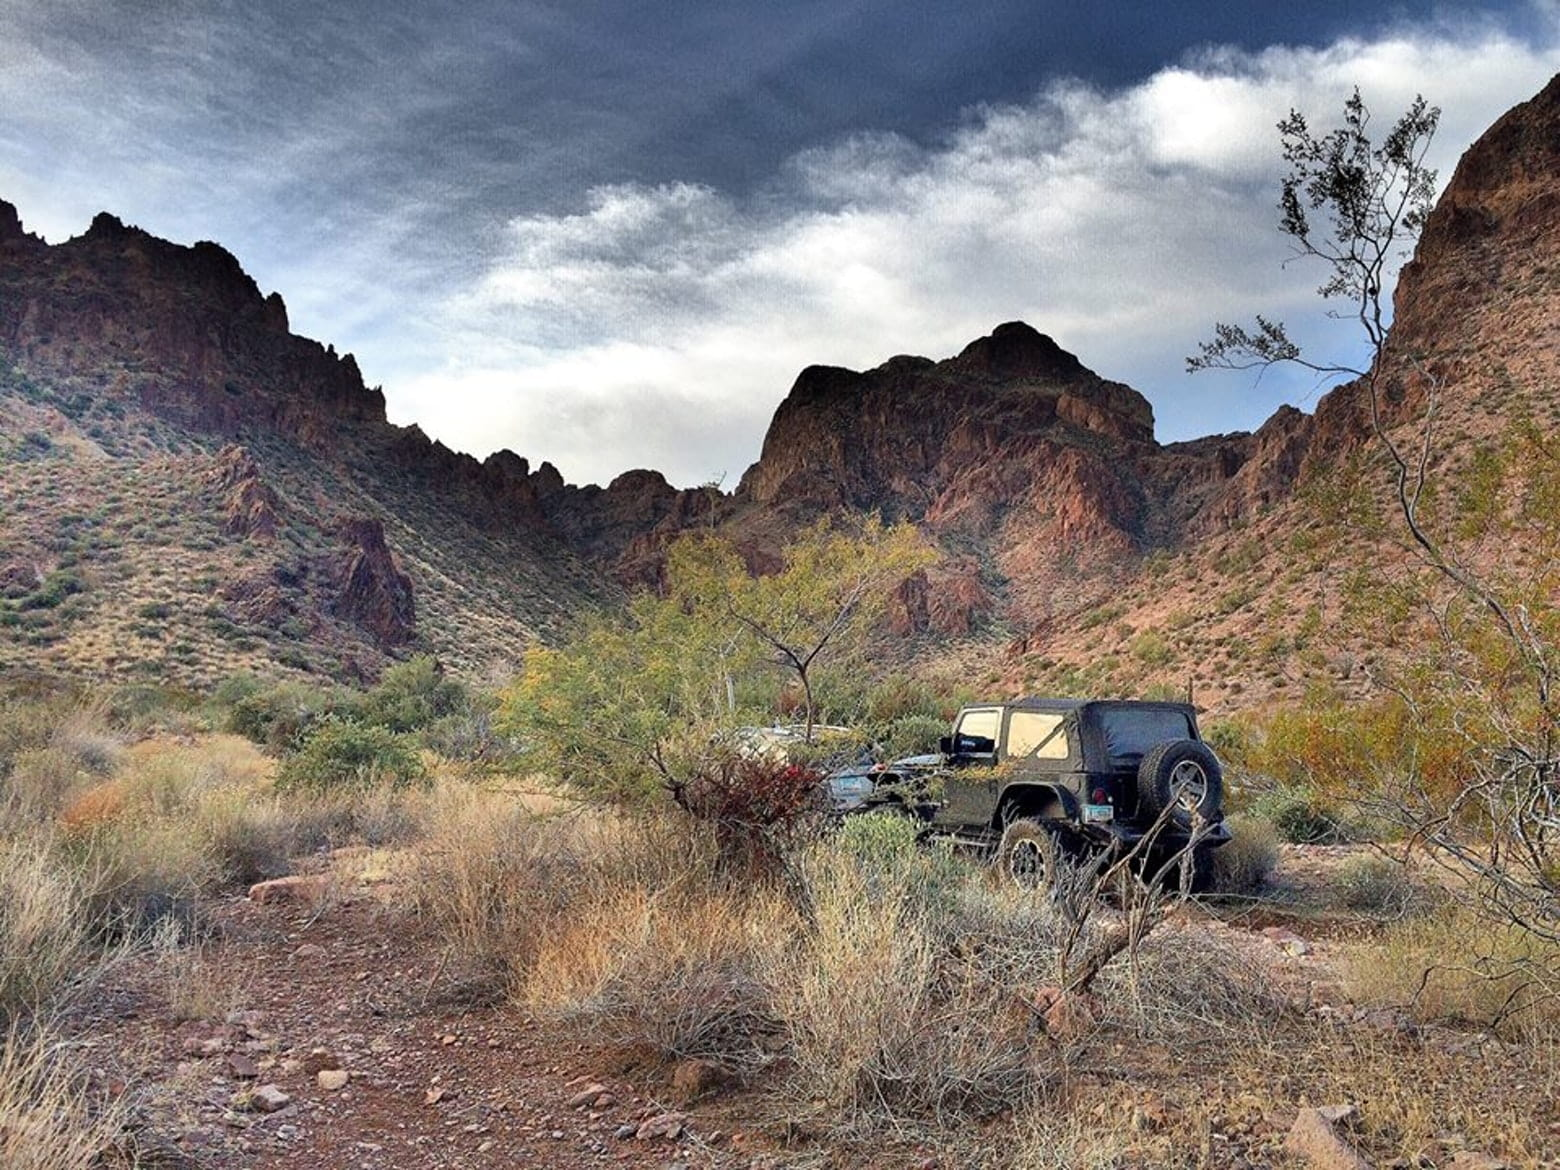 Jeep parked in backcountry brush of Arizona in front of rock cliffs.